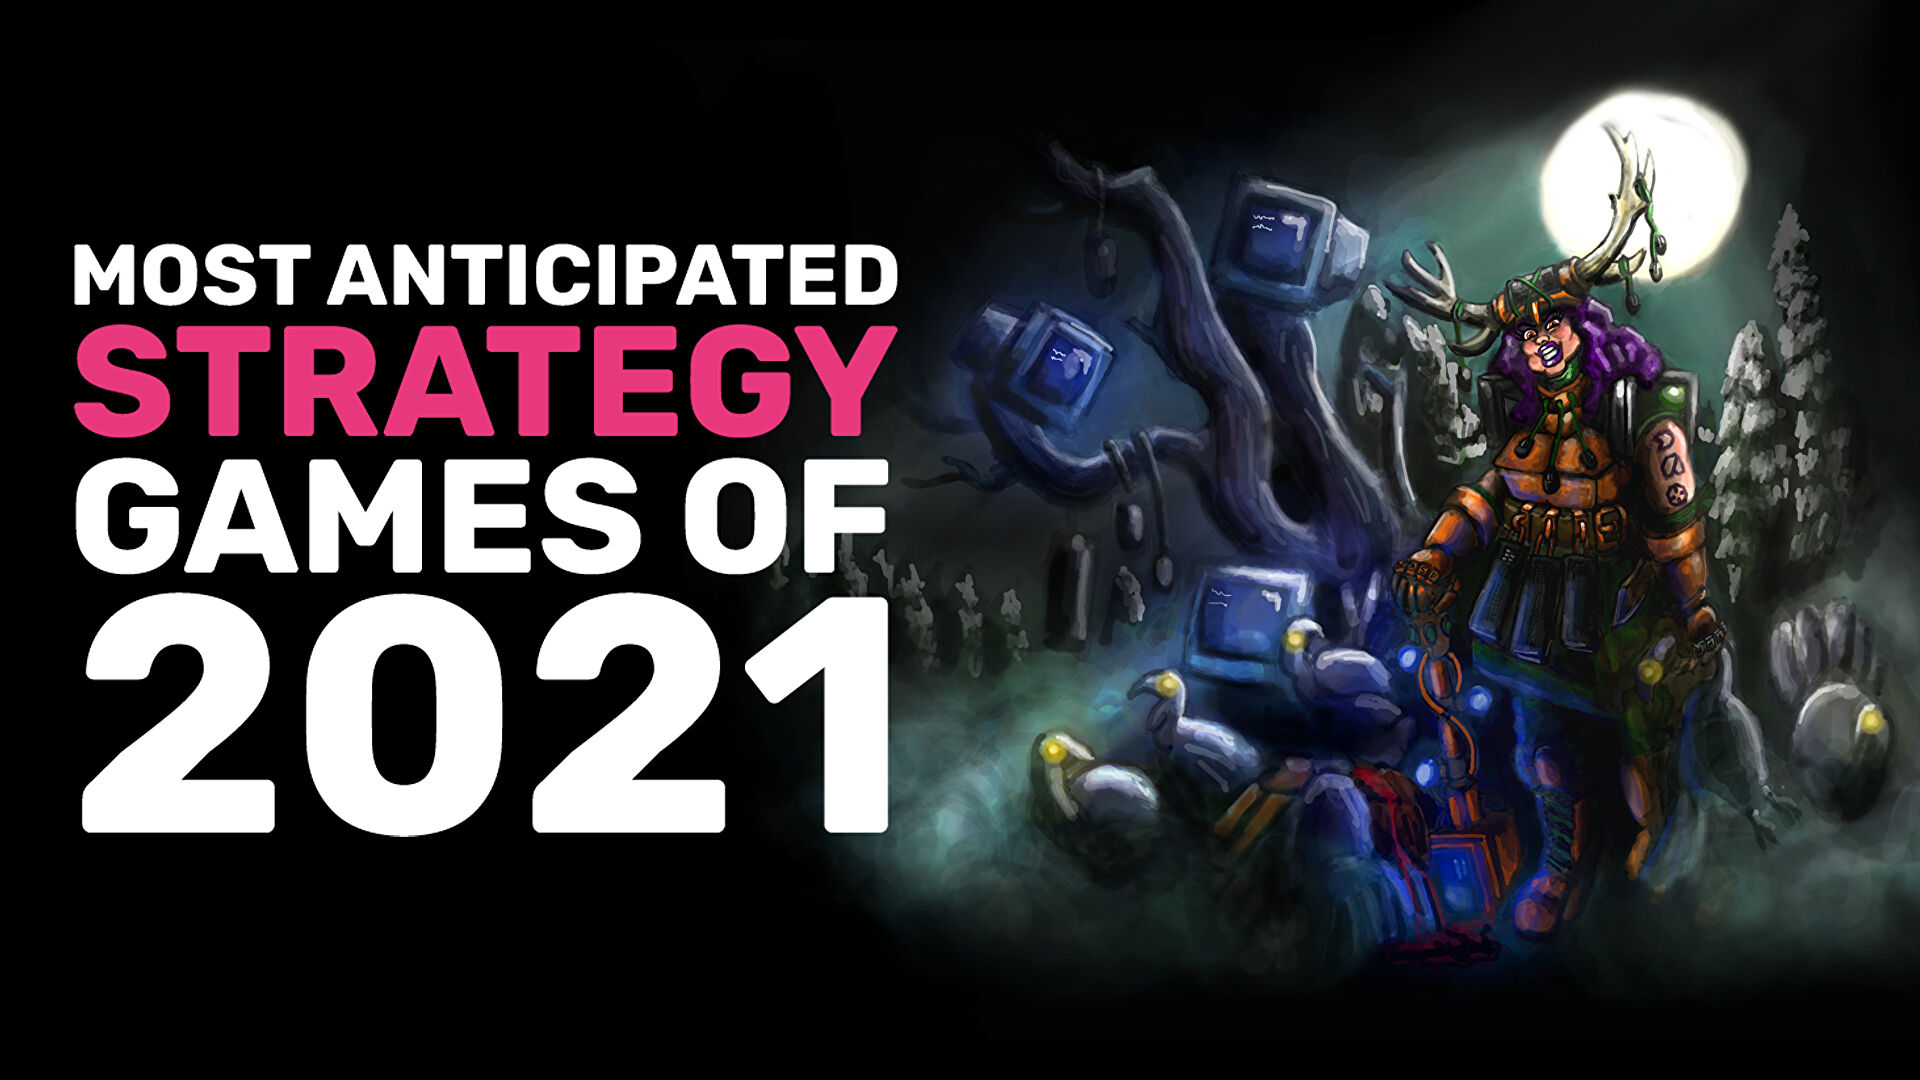 Our most anticipated strategy games of 2021